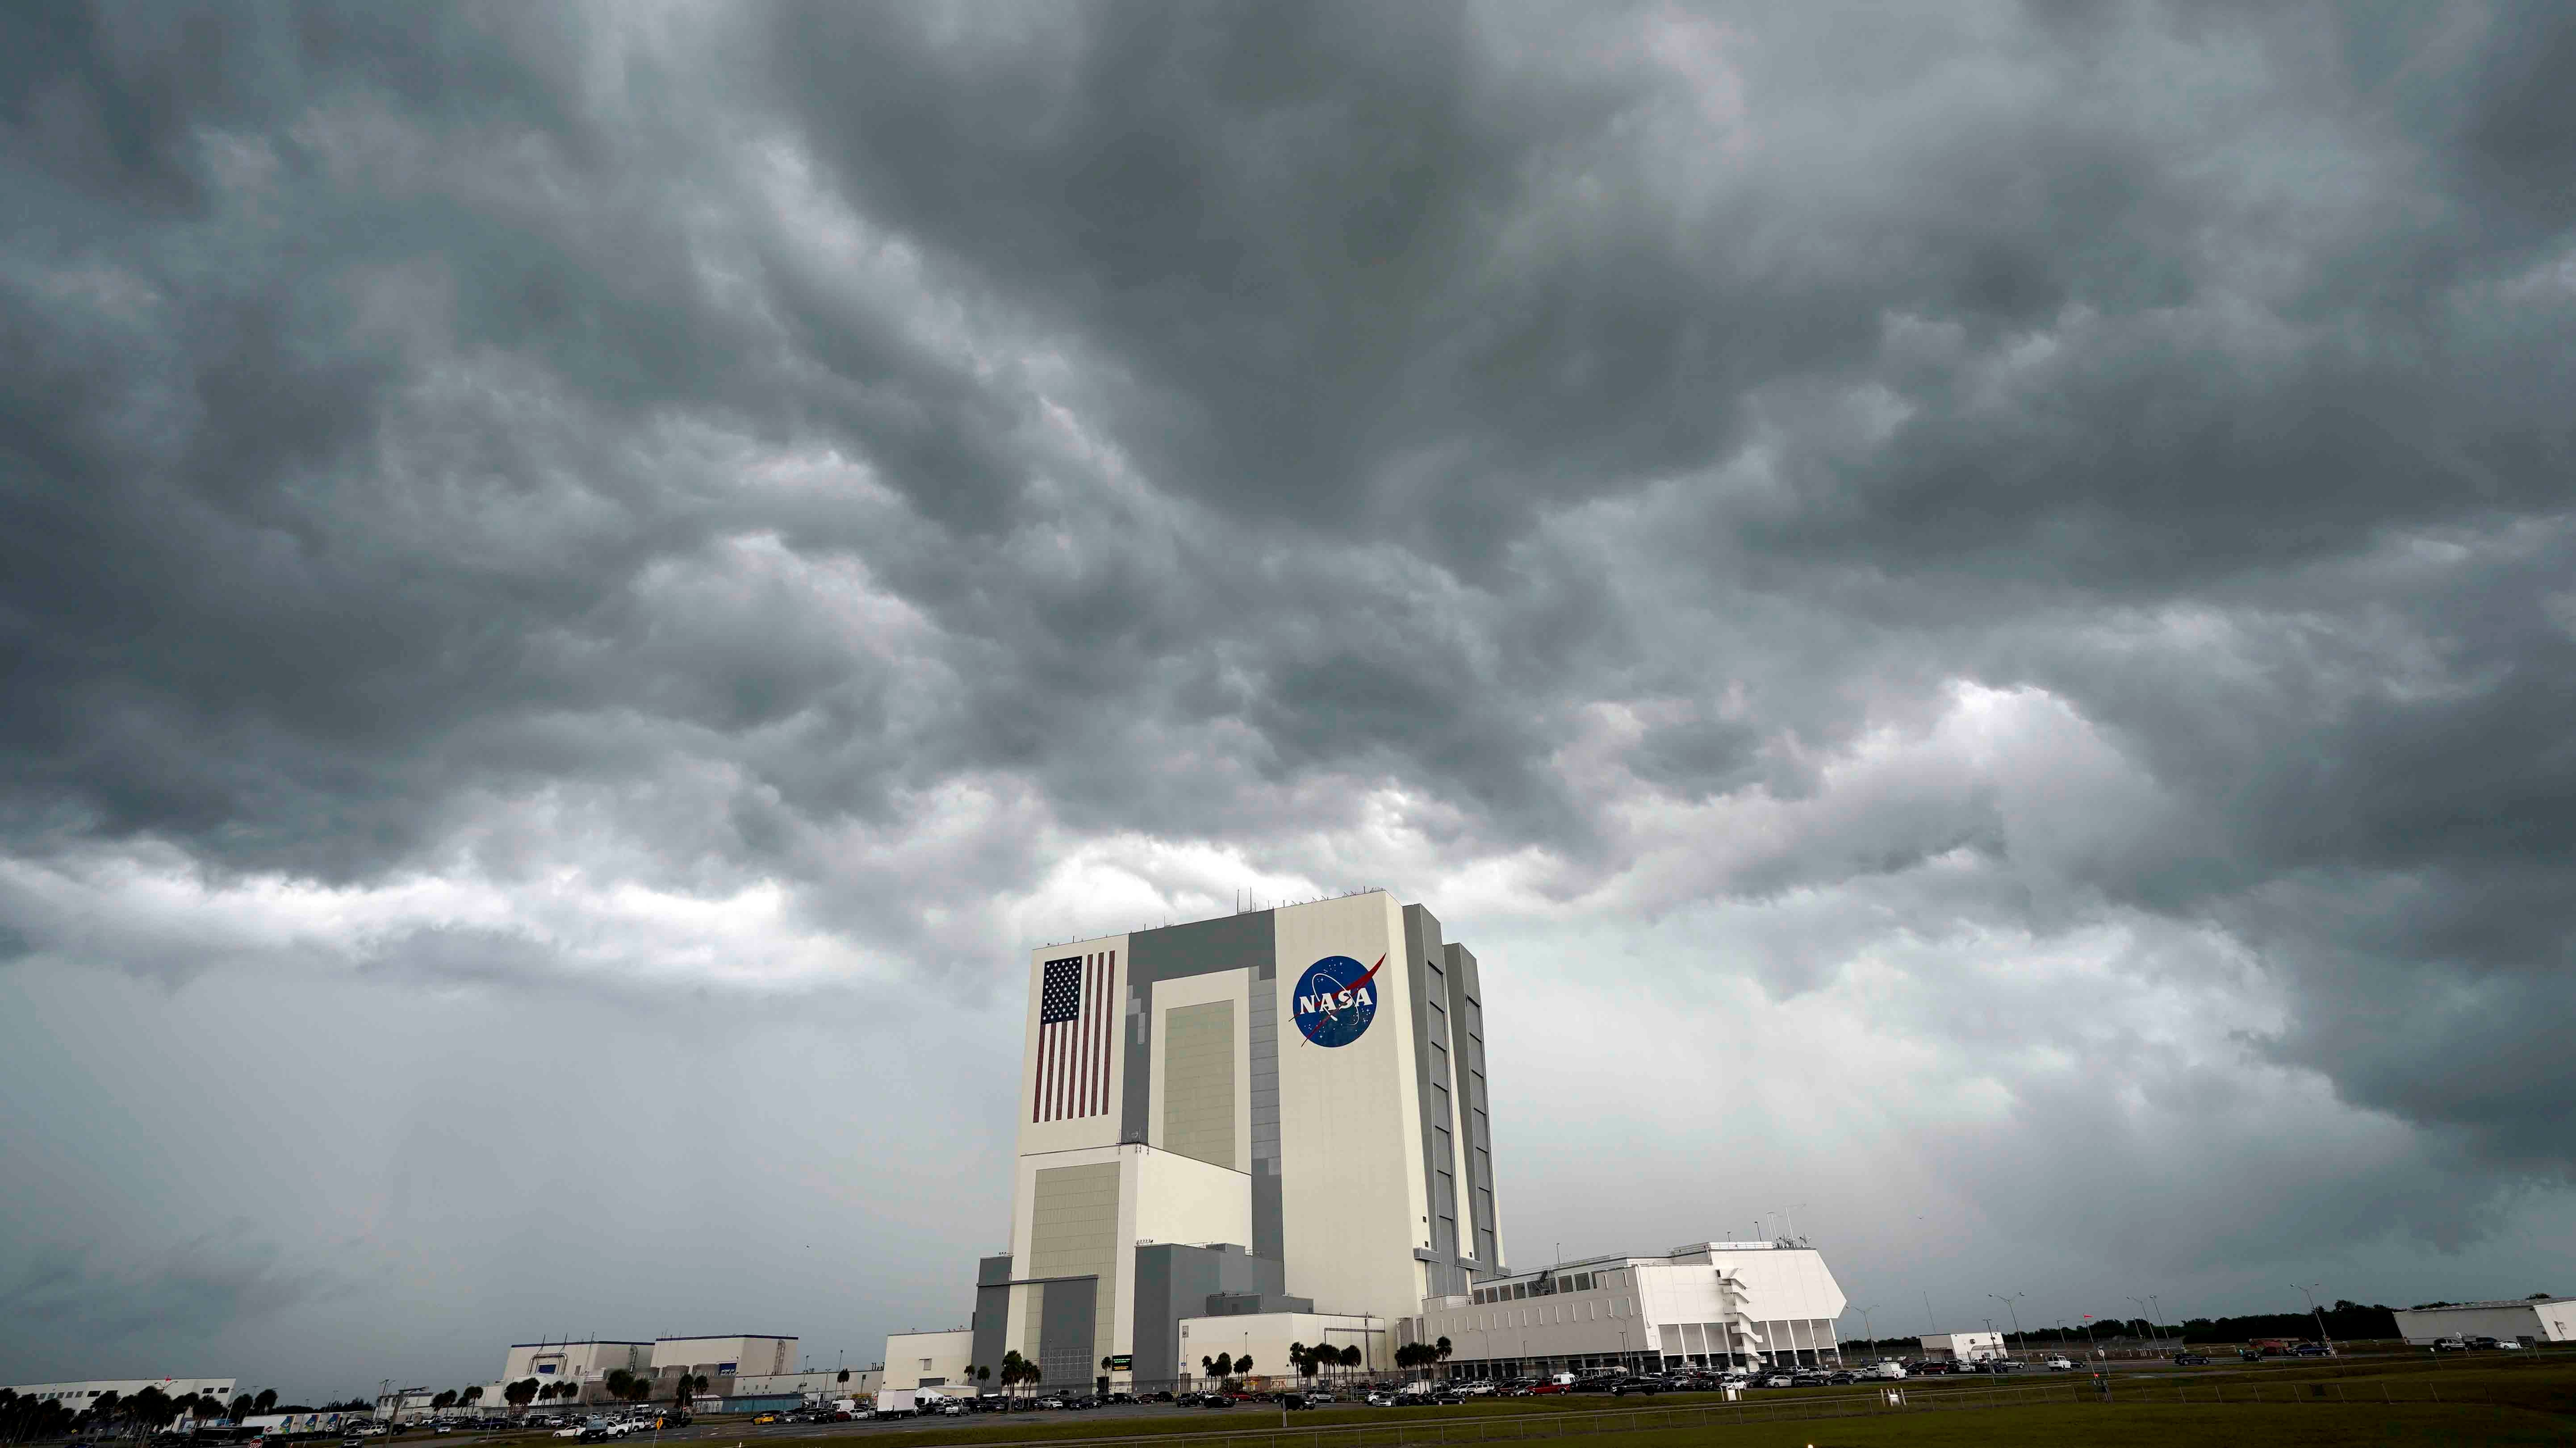 SpaceX Planning Tuesday Launch if Weekend Weather Doesn't Cooperate; Forecasting Plays Key Role in Launch Safety | The Weather Channel